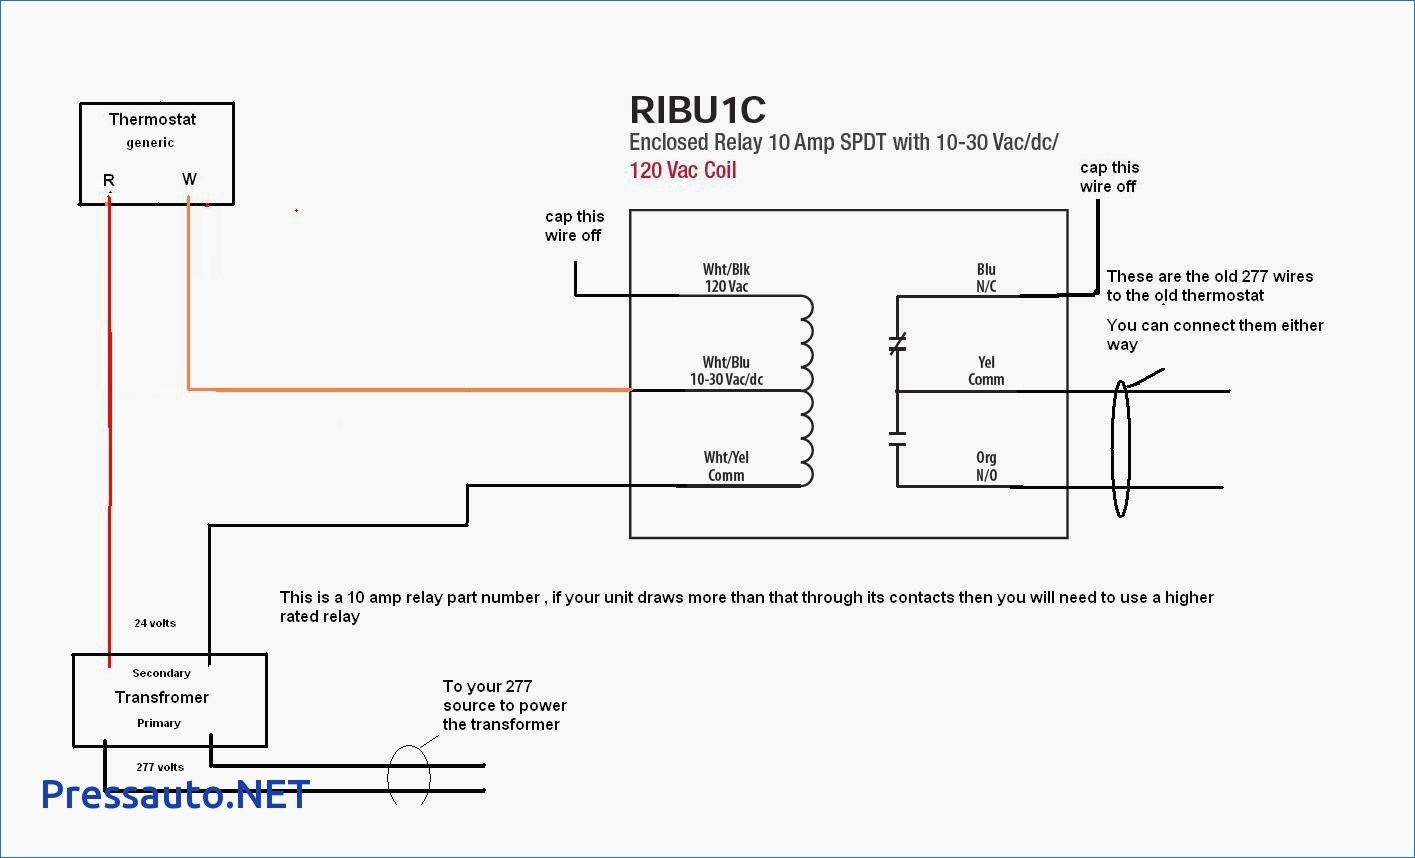 ribu1s wiring diagram Collection-ribu1c wiring diagram Download gallery of Ribu1c Wiring Diagram 8 b DOWNLOAD Wiring Diagram 17-p